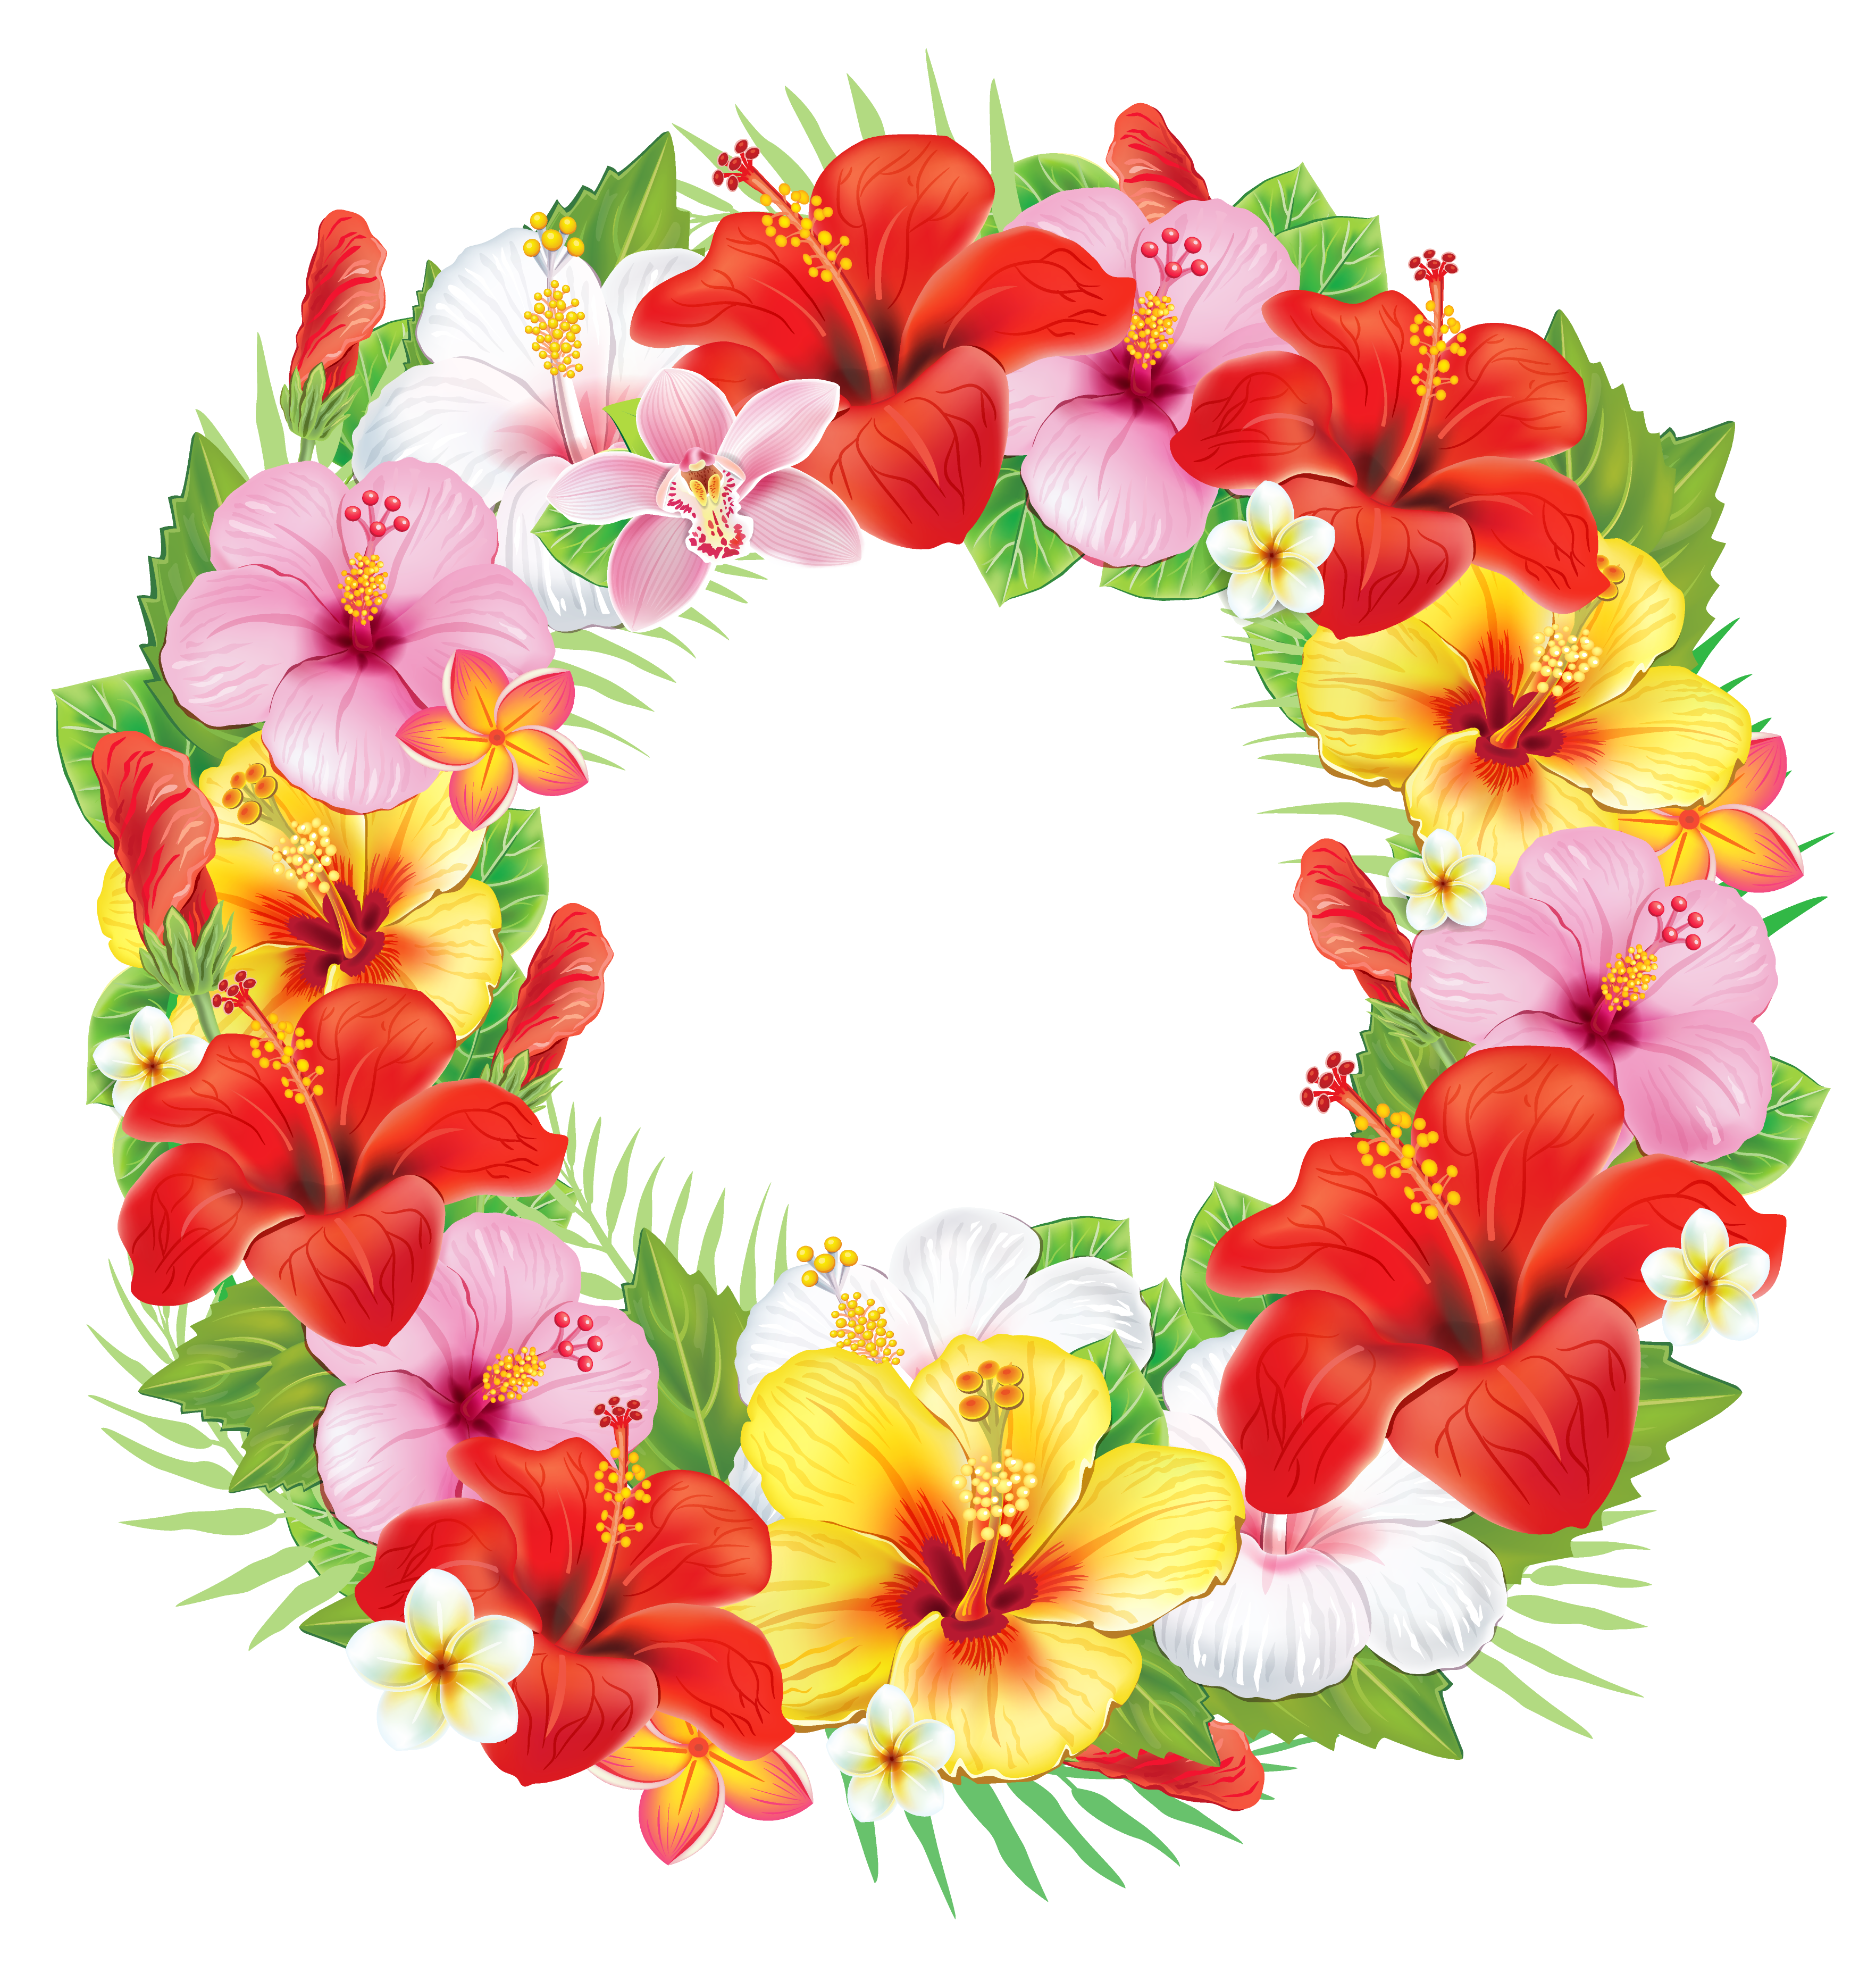 Flower lei png. Wreath of exotic flowers